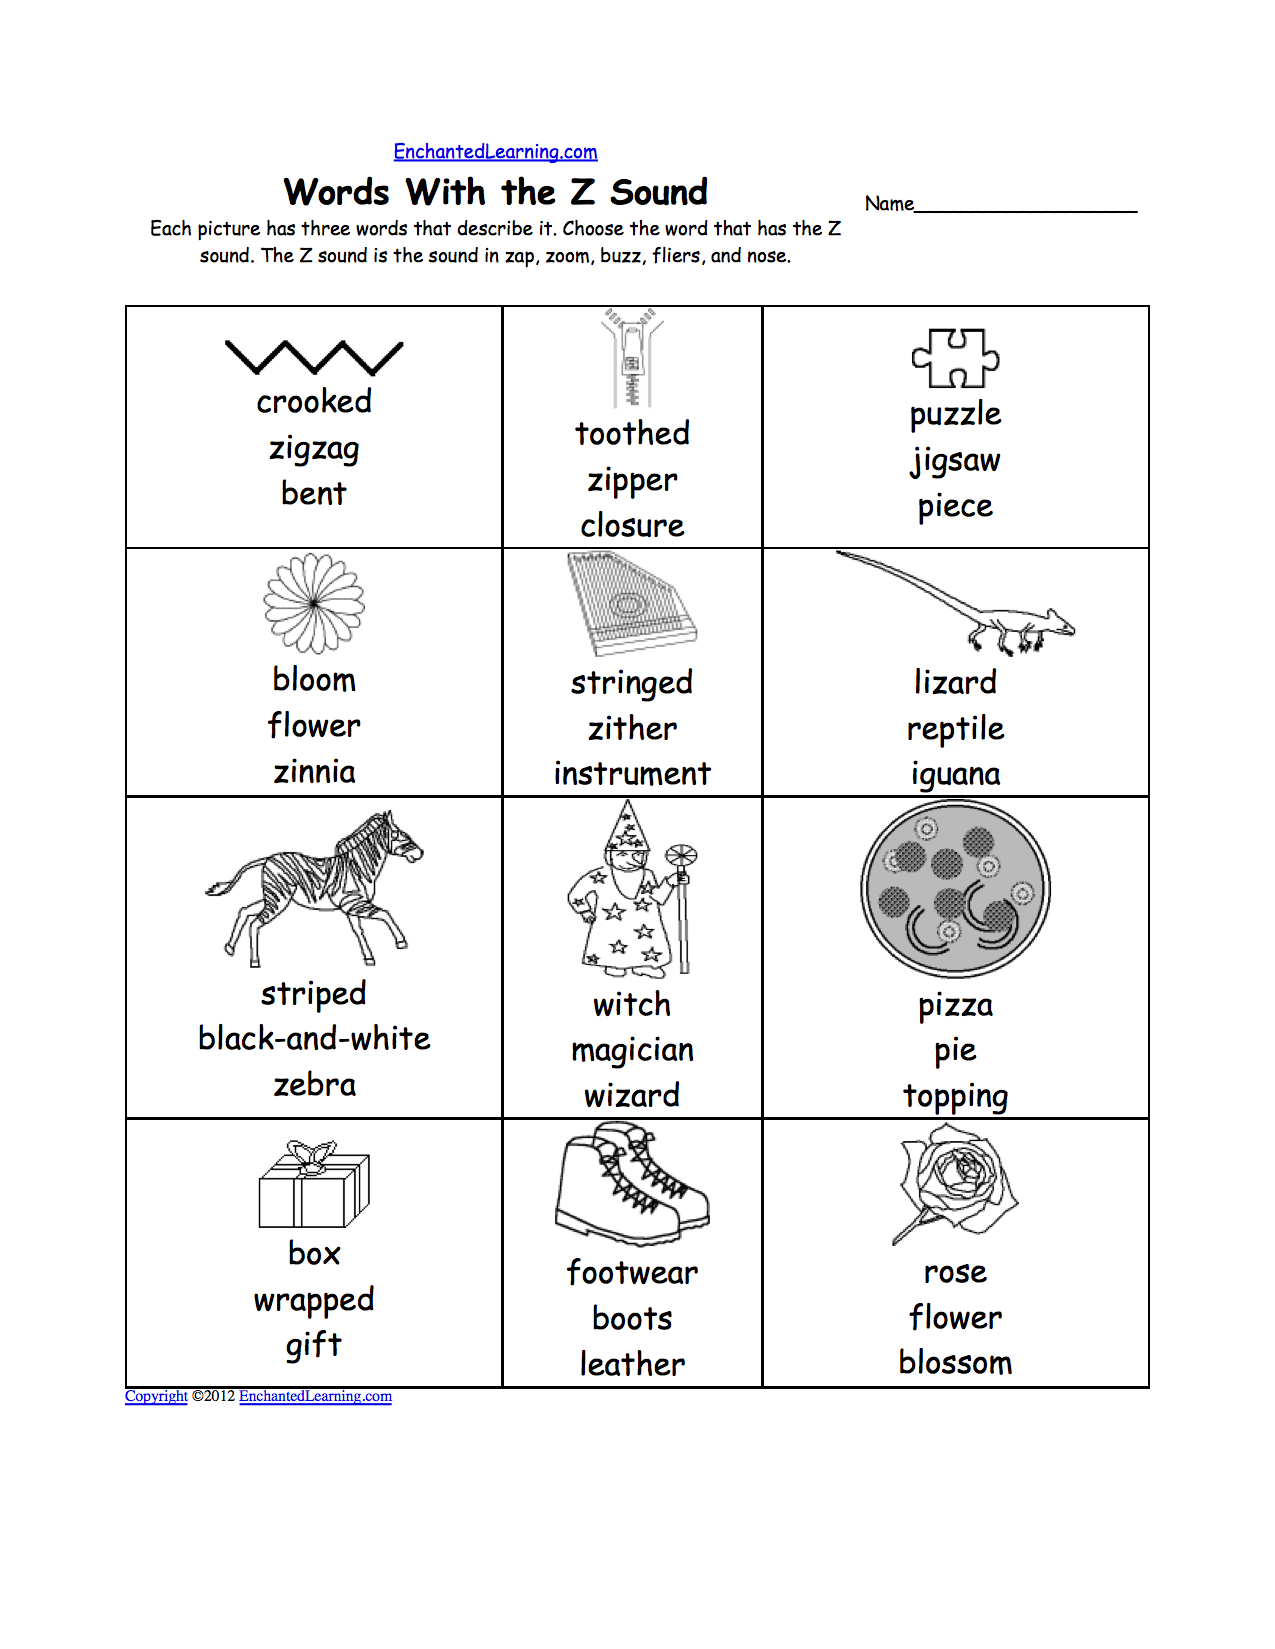 Aldiablosus  Winning Phonics Worksheets Multiple Choice Worksheets To Print  With Gorgeous Phonics Worksheets Multiple Choice Worksheets To Print  Enchantedlearningcom With Appealing Turkey Worksheets Kindergarten Also Ksp Worksheet In Addition Th Grade Math Word Problems Worksheet And Multiplying Decimals Worksheet Th Grade As Well As Molecular Mass And Percent Composition Worksheet Answers Additionally Mixed And Improper Fractions Worksheet From Enchantedlearningcom With Aldiablosus  Gorgeous Phonics Worksheets Multiple Choice Worksheets To Print  With Appealing Phonics Worksheets Multiple Choice Worksheets To Print  Enchantedlearningcom And Winning Turkey Worksheets Kindergarten Also Ksp Worksheet In Addition Th Grade Math Word Problems Worksheet From Enchantedlearningcom